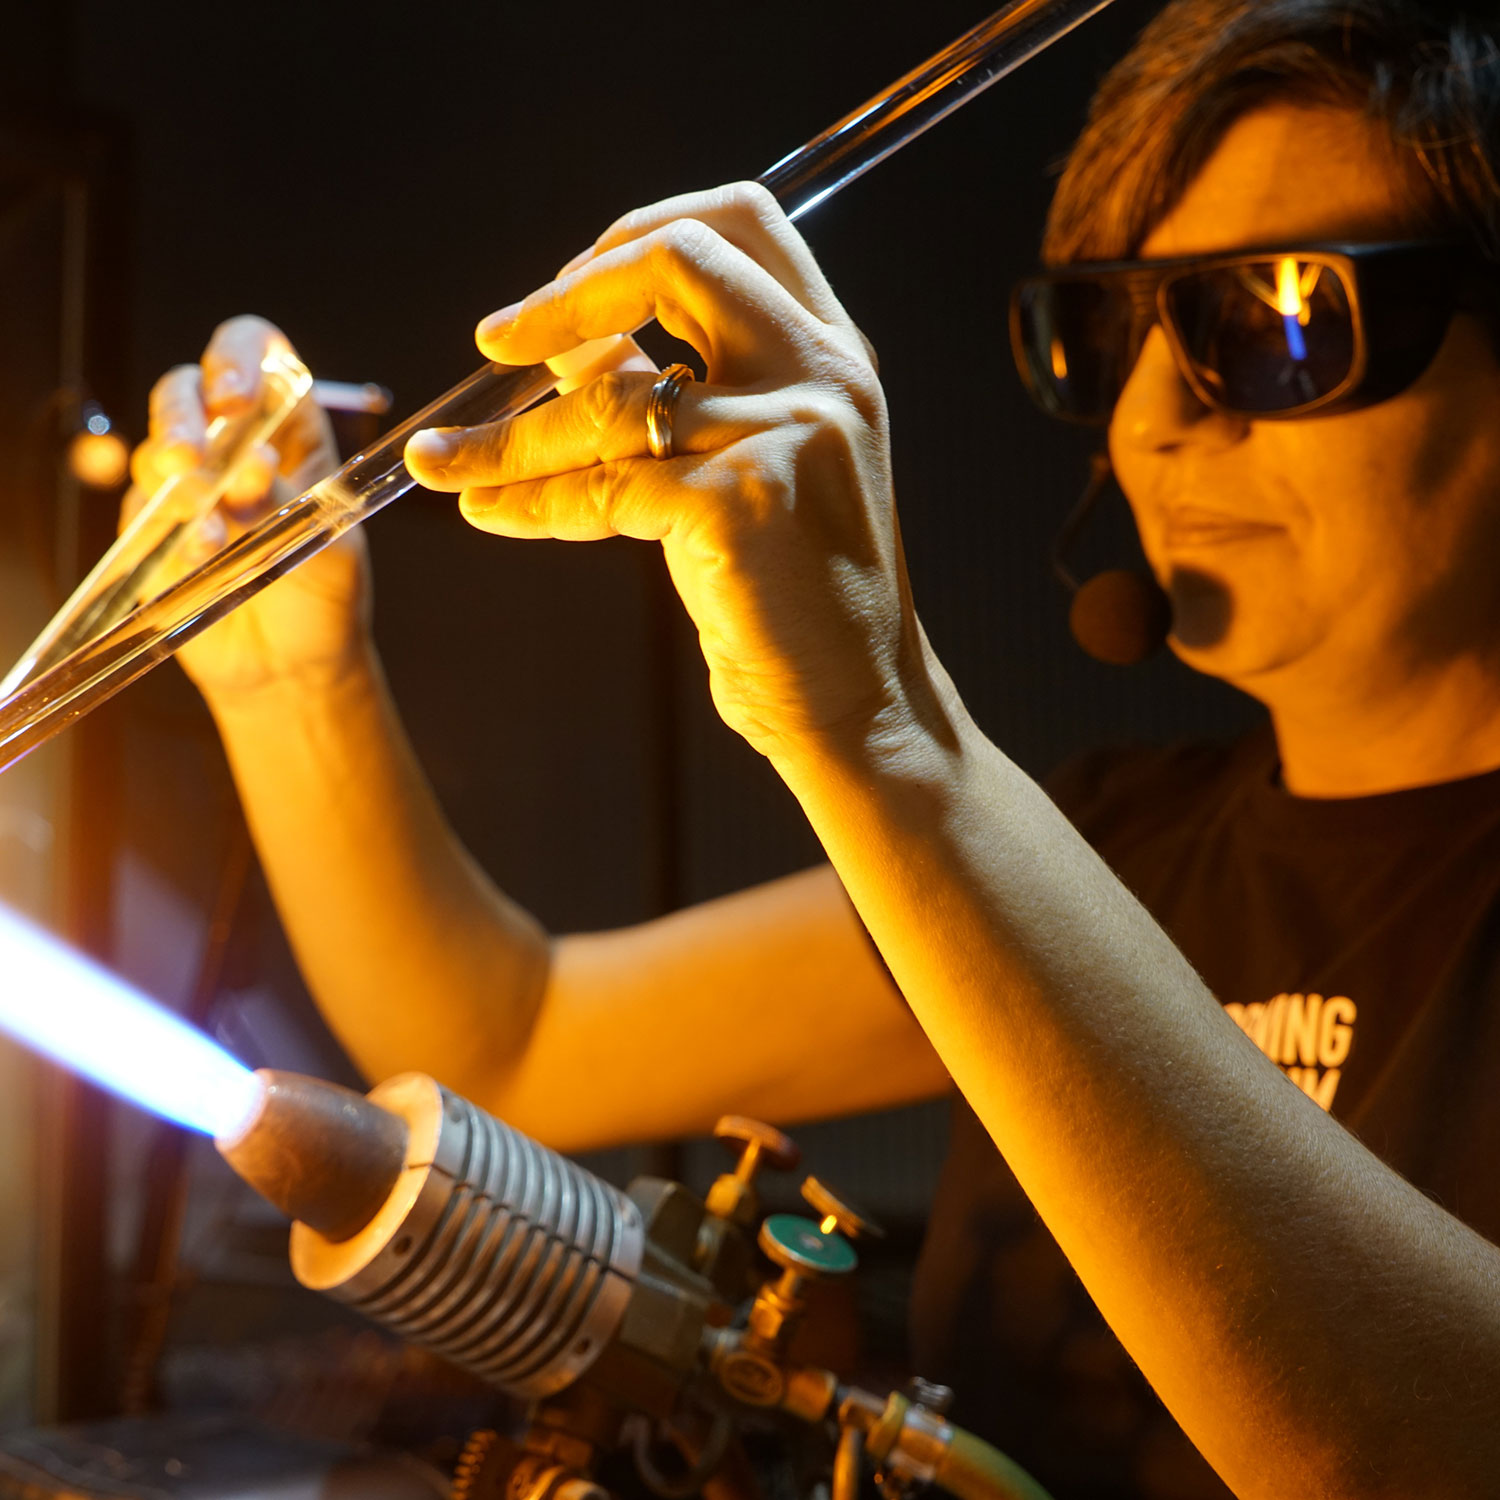 Woman wearing dark glasses works at a flameworking torch.